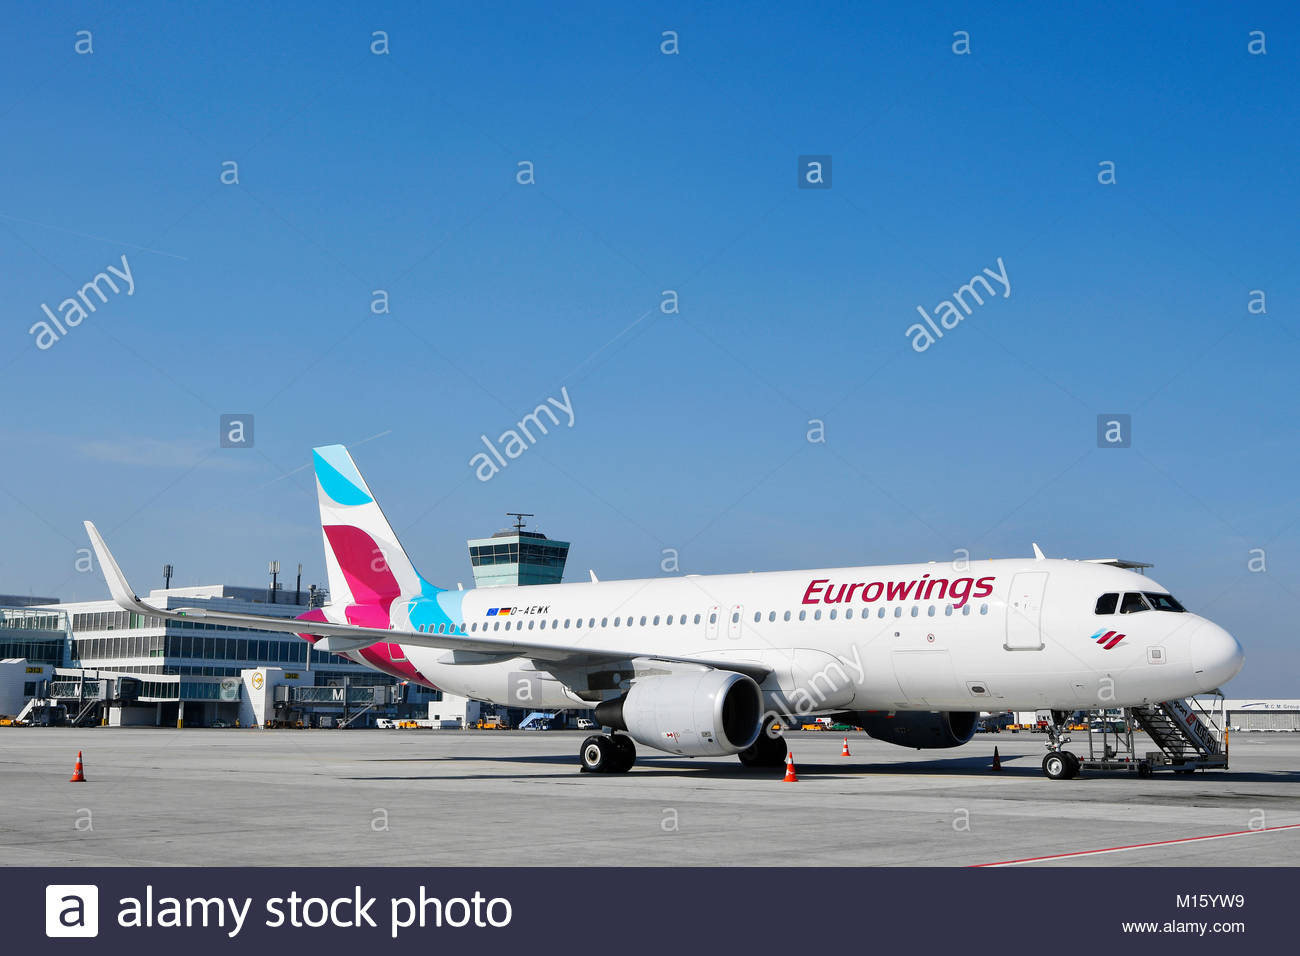 EurowingsAirbus A 320Apron EastSatellite in the background 1300x956